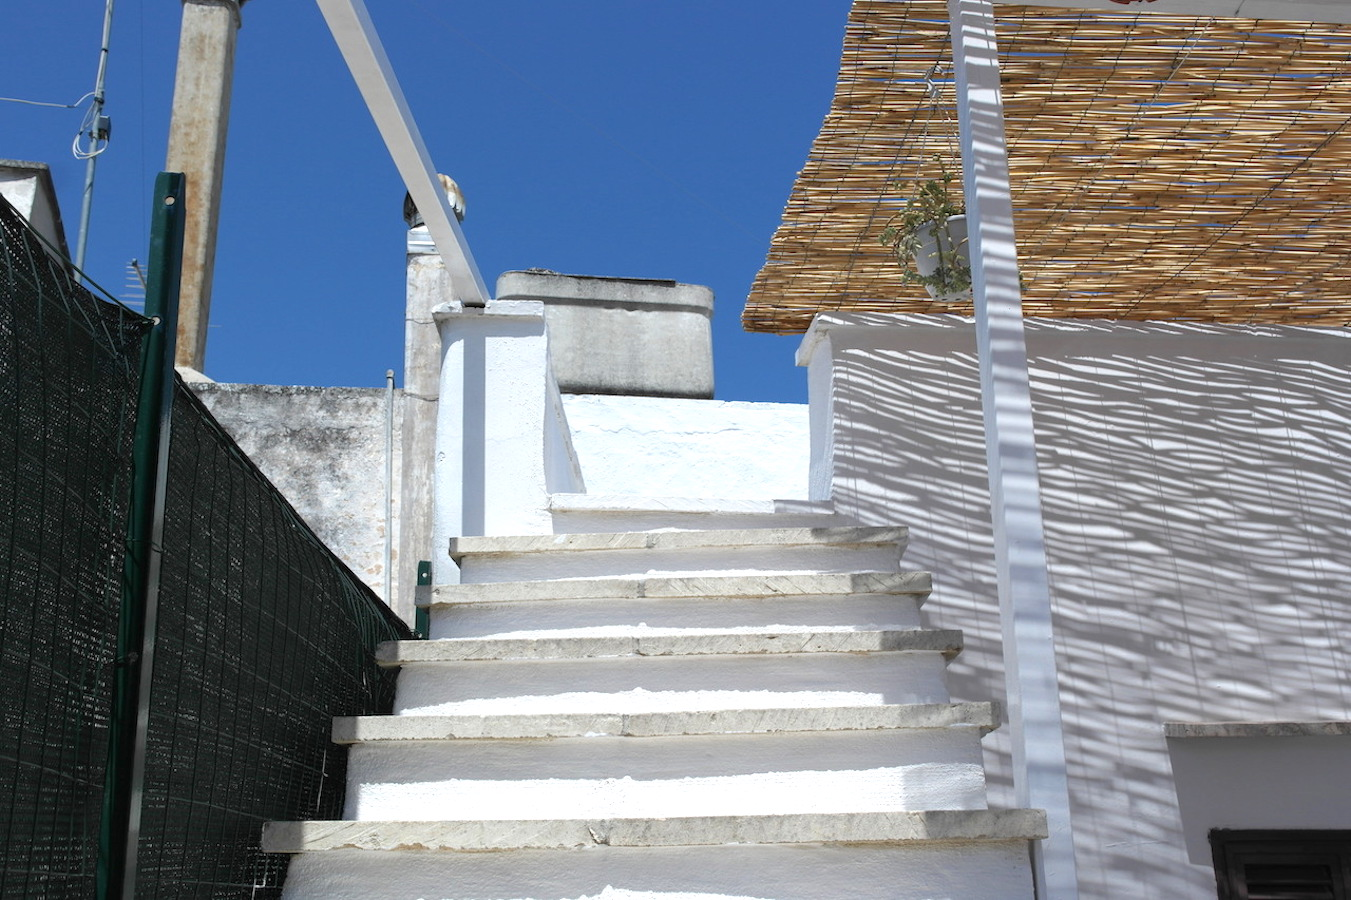 The access to the upper rooftop patio at Casa Caterina ostuni puglia vacation holiday rental house